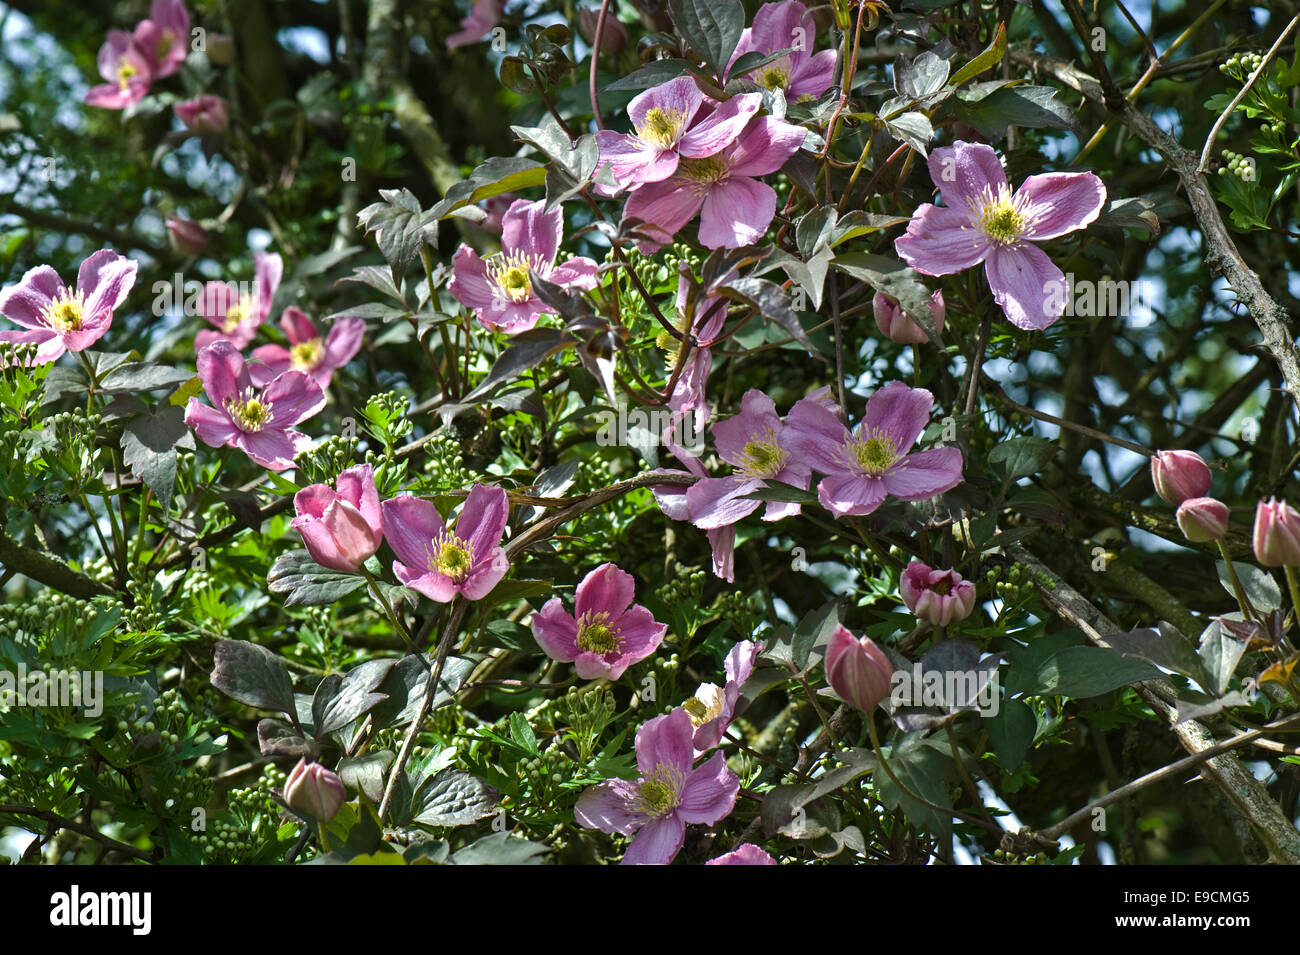 An old pink flowered Clematis montana climbing through the branches of a hawthorn tree - Stock Image